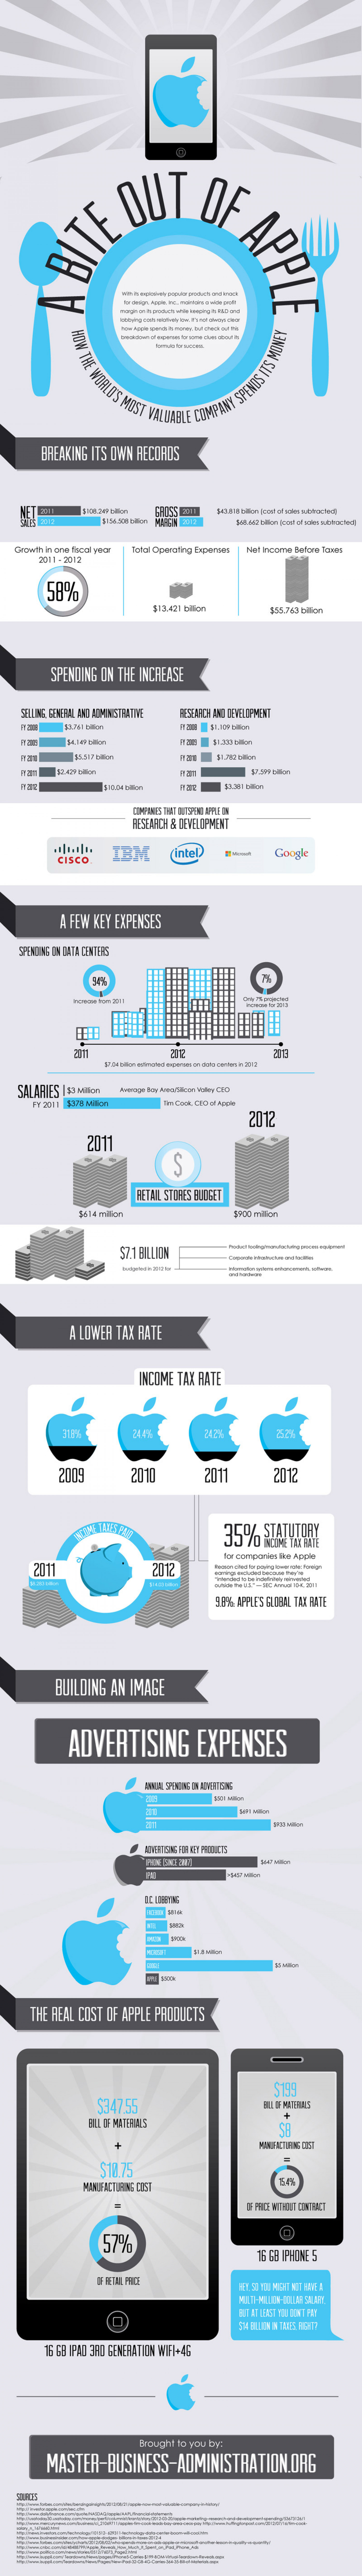 A Bite Out of Apple Infographic